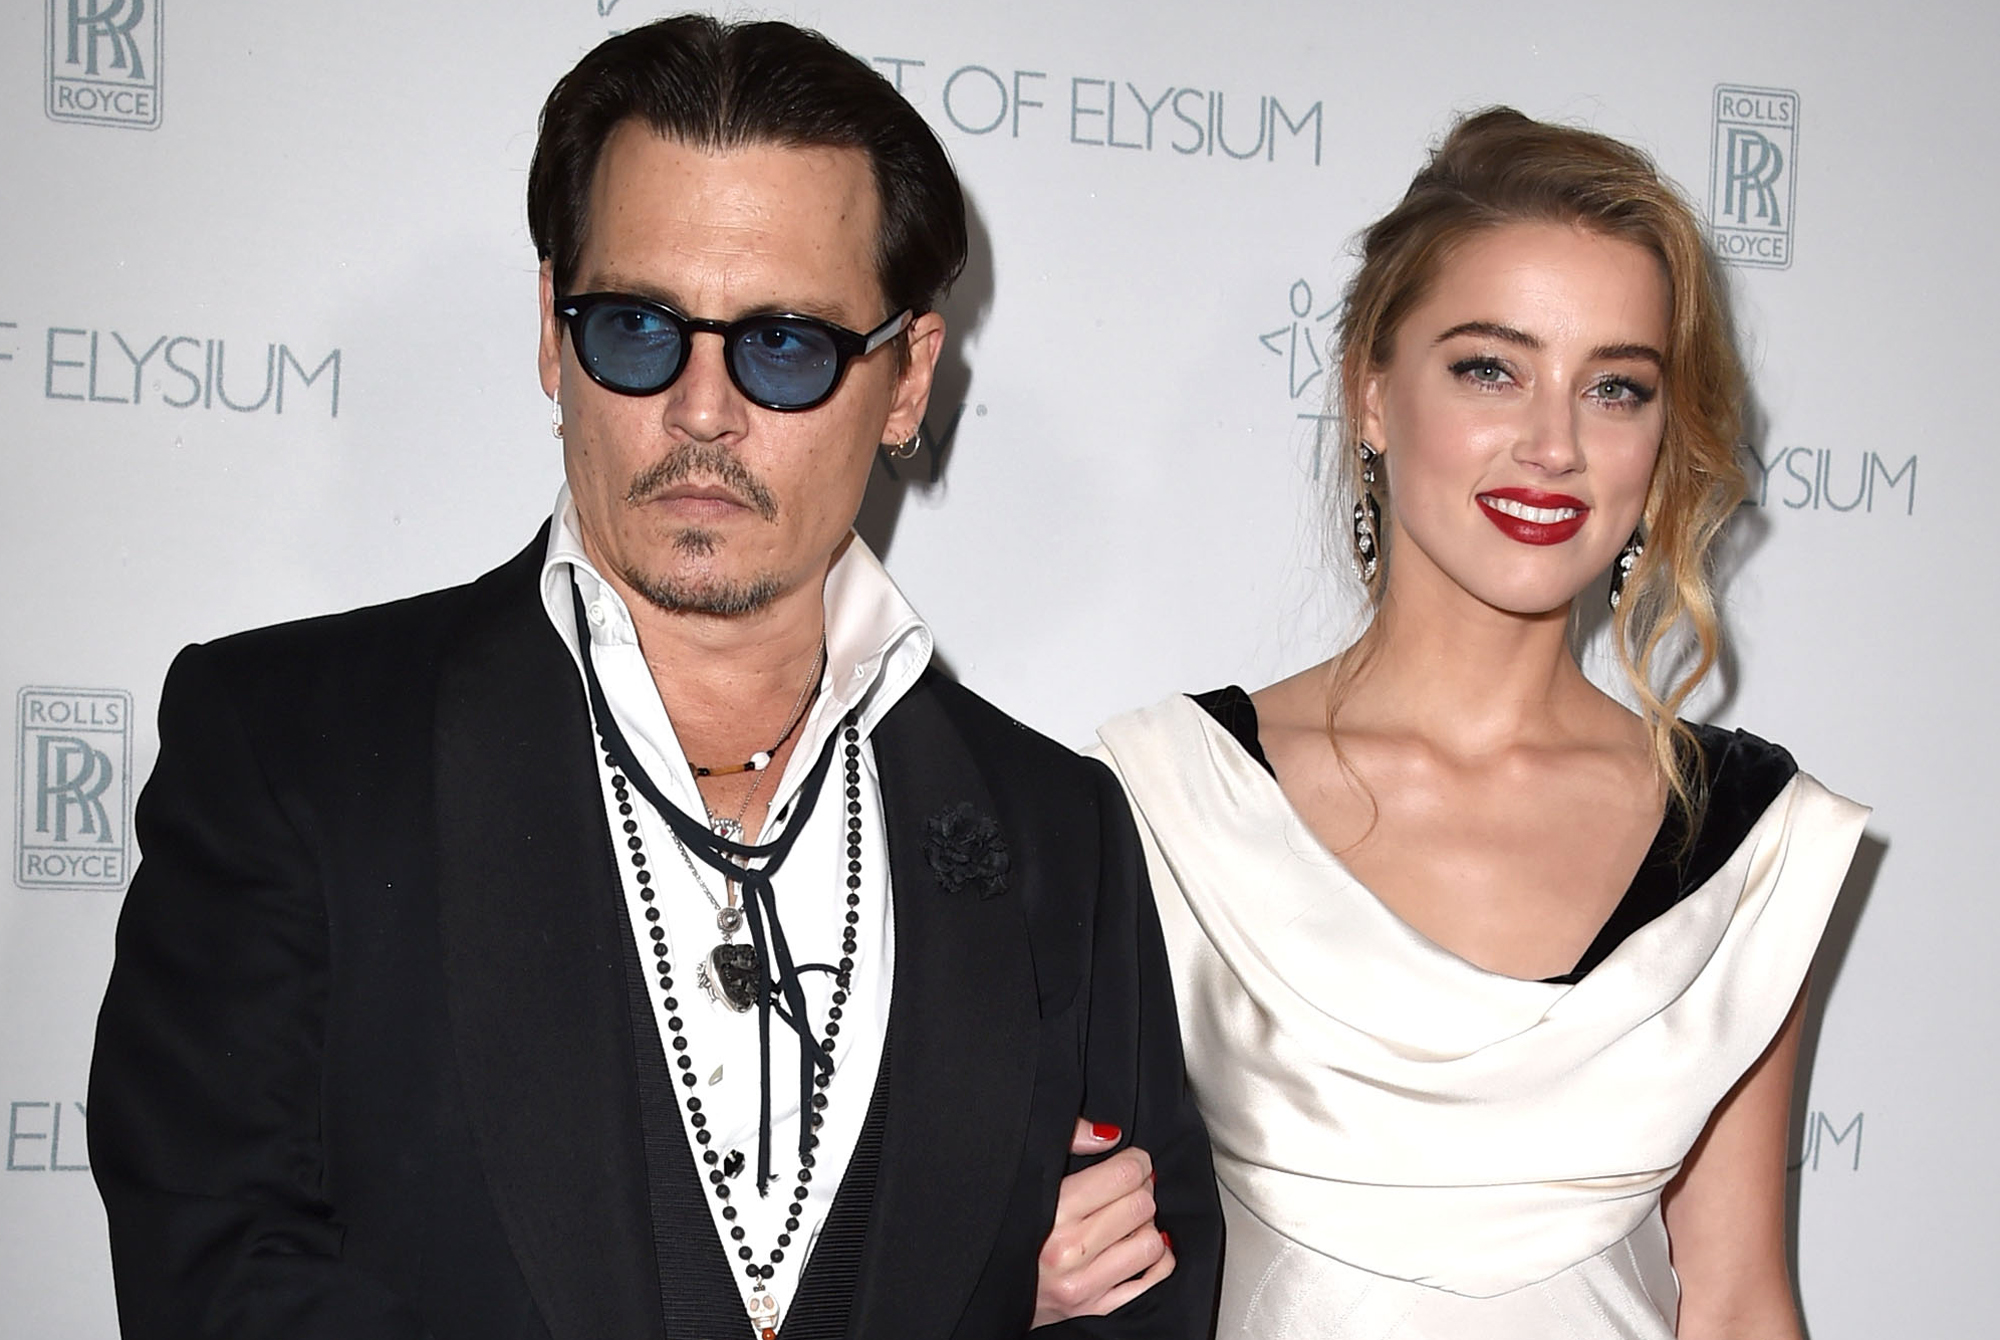 Johnny-Depp-et-Amber-Heard-marié?